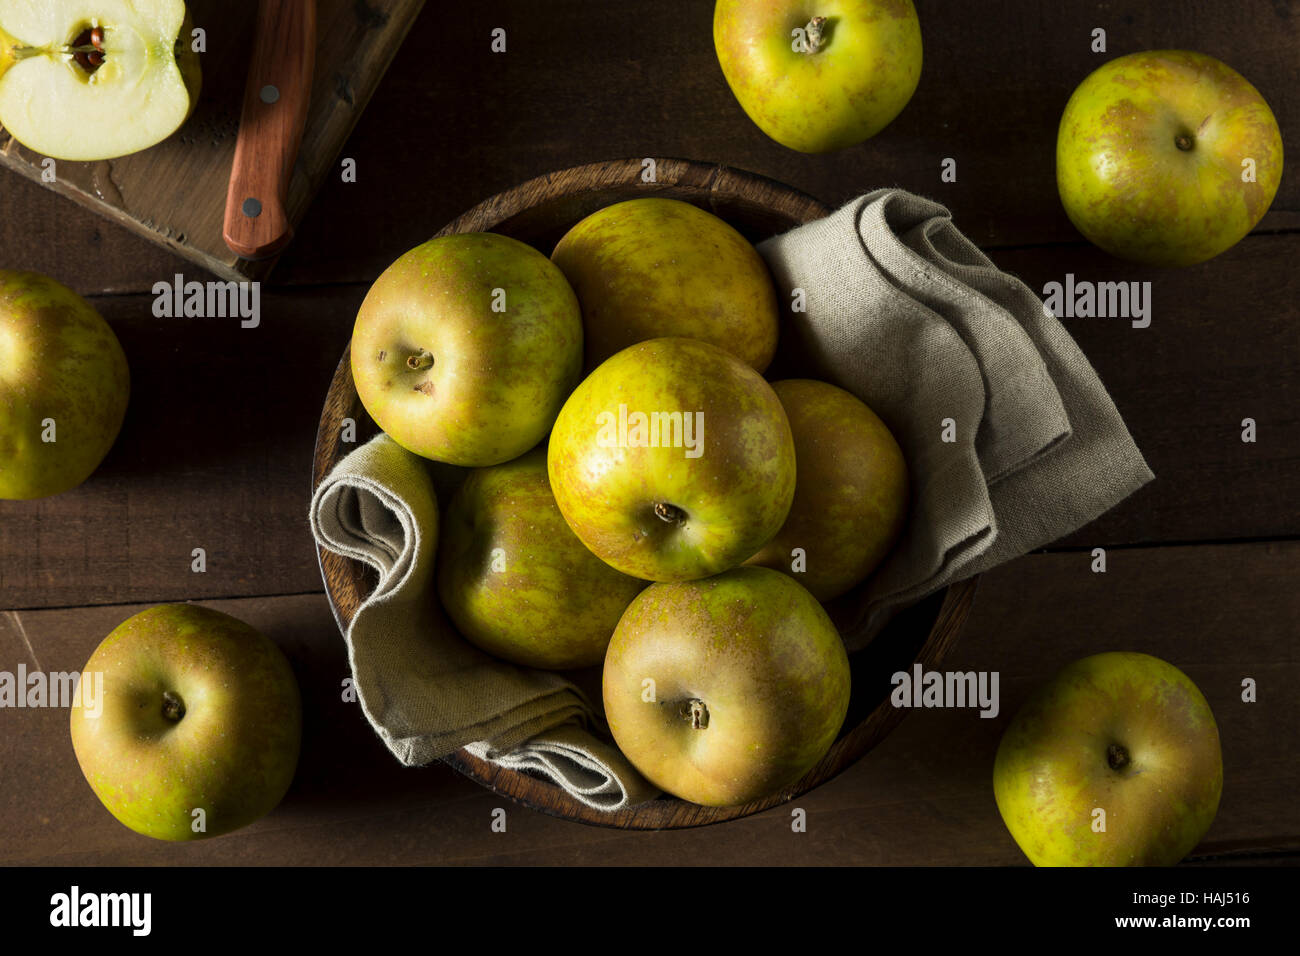 Raw Organic Heirloom Golden Russet Apples Ready to Eat - Stock Image